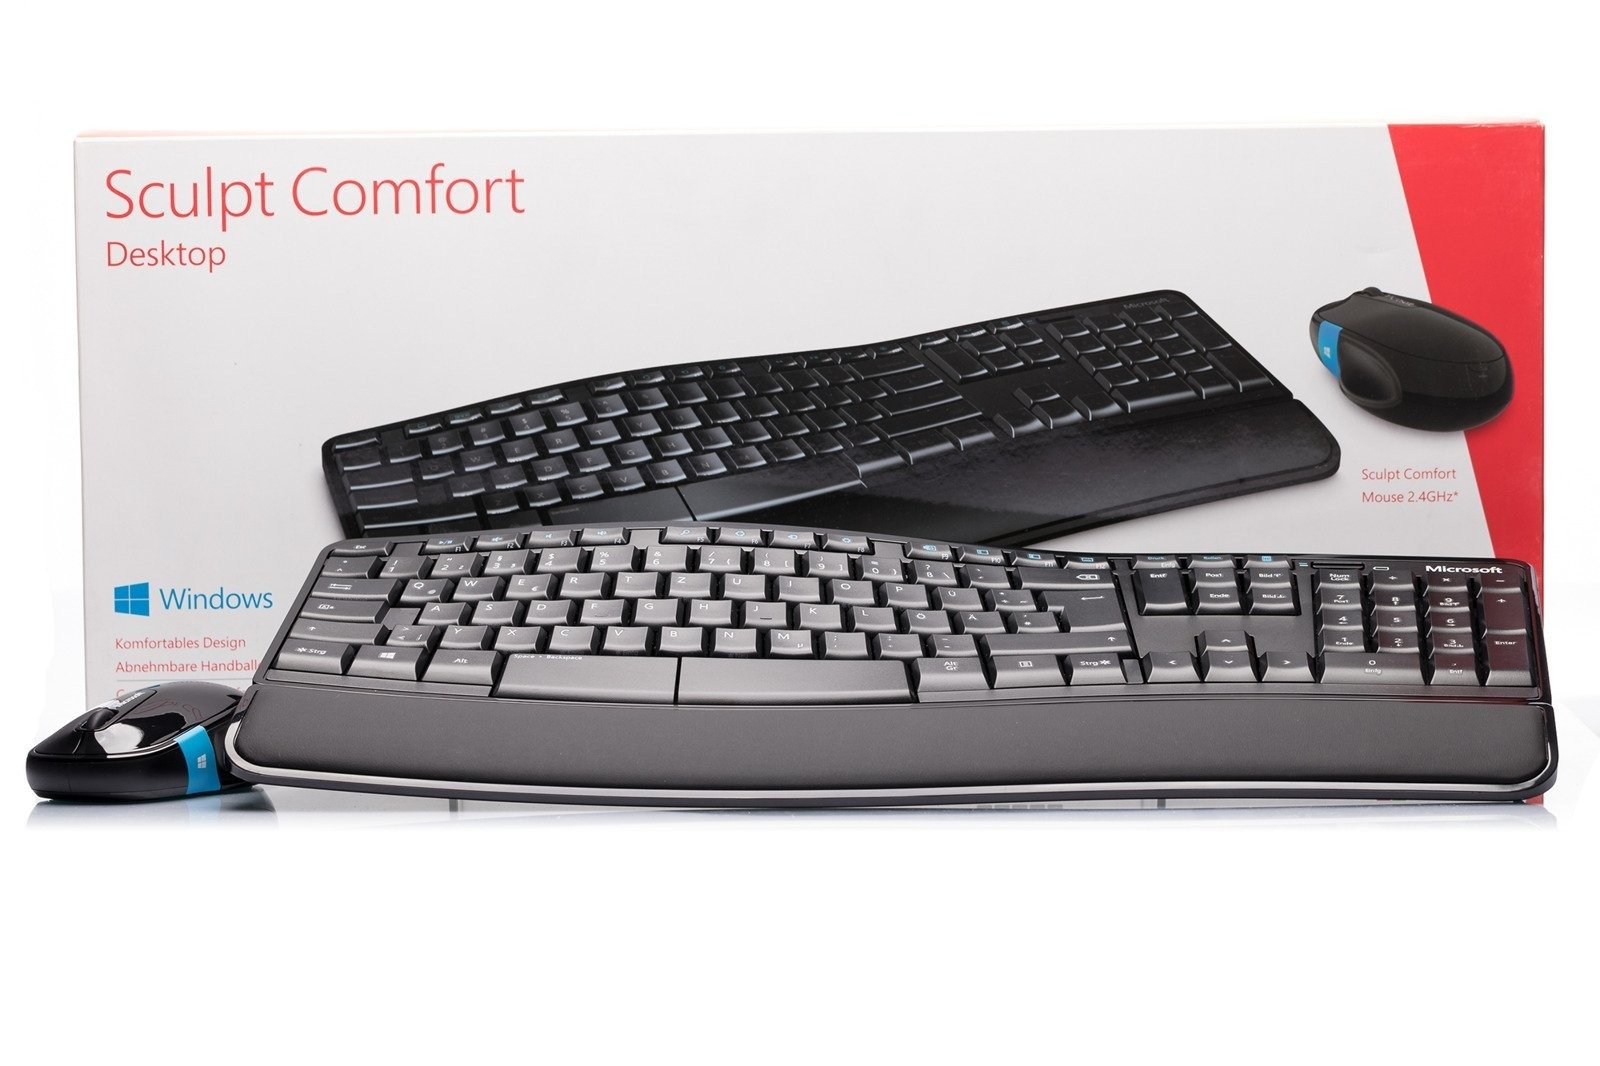 Microsoft Sculpt Comfort Desktop (German)